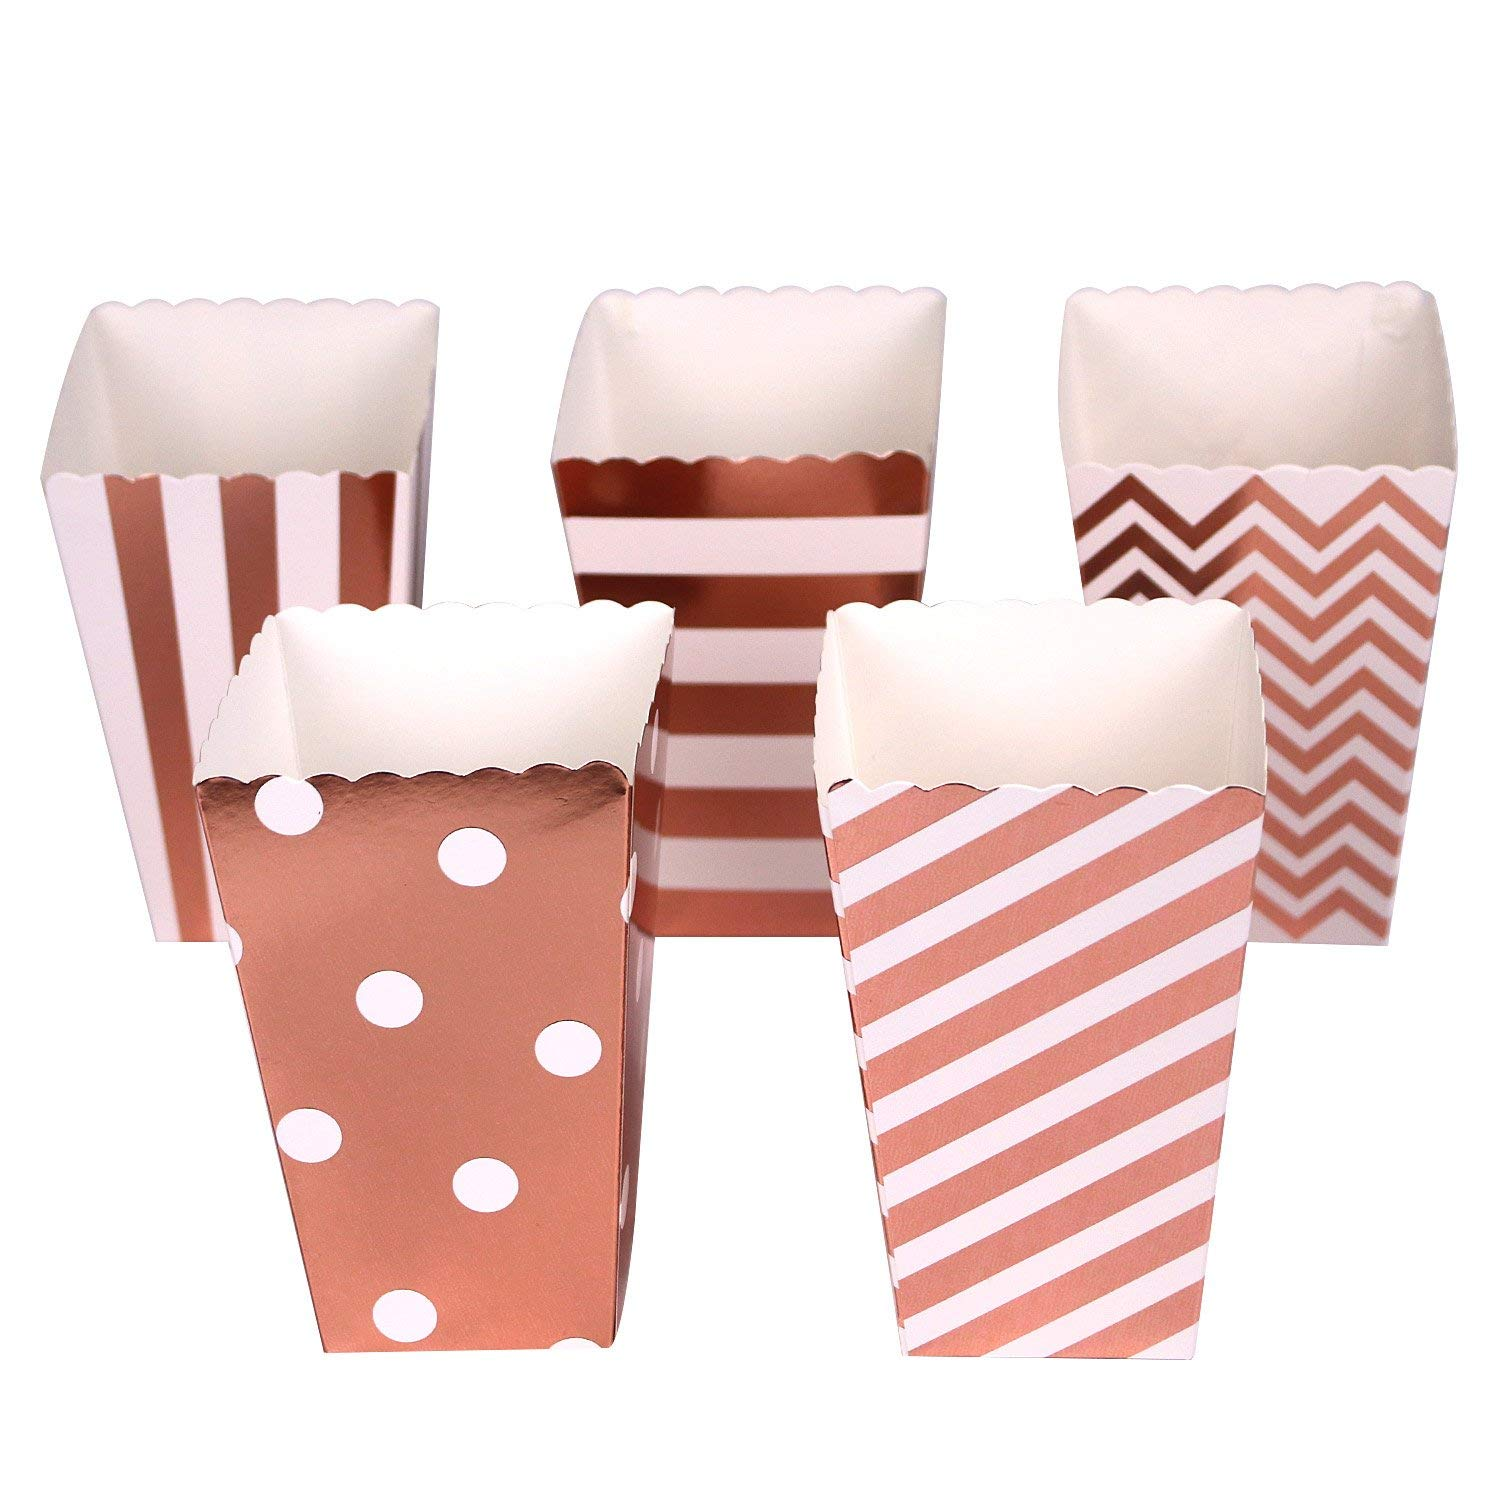 Mini Poprcorn Boxes 100 Pack Rose Gold Paper Popcorn Snack Containers Treat Box for Wedding Party Bridal Shower Birthday Movies by BALANSOHO (Image #4)